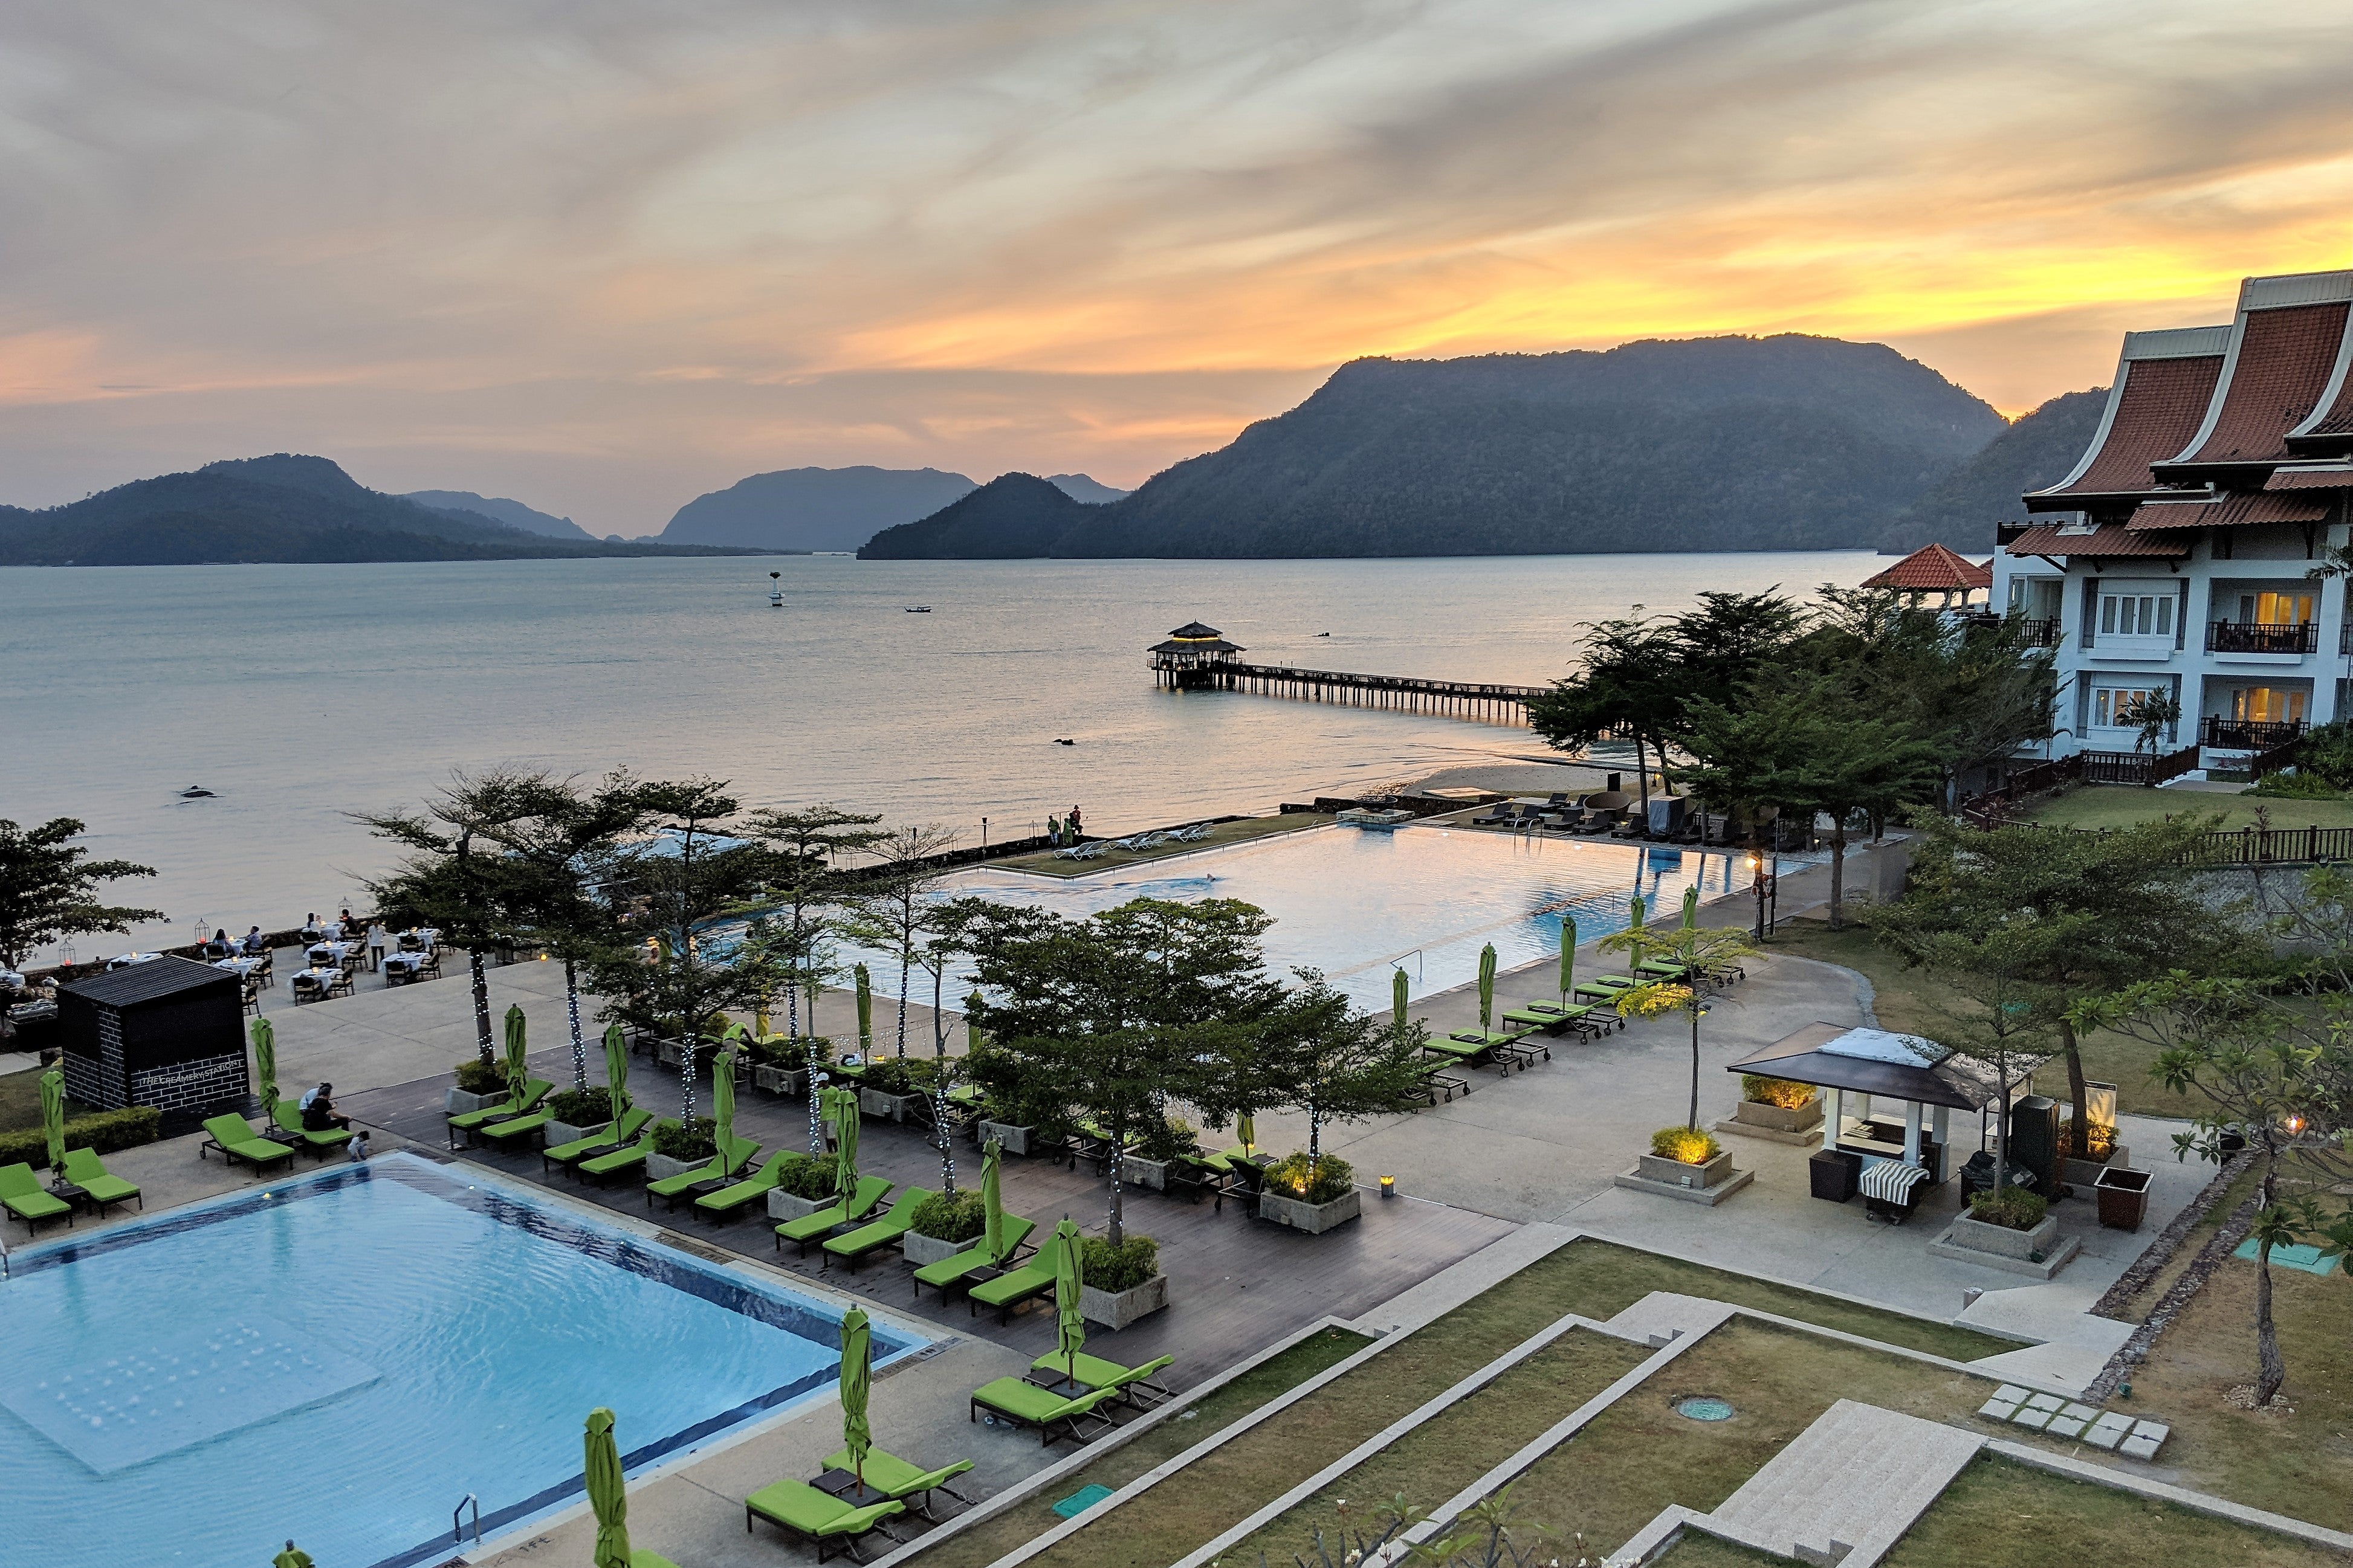 Why I booked 6 upcoming Marriott stays with cash instead of points